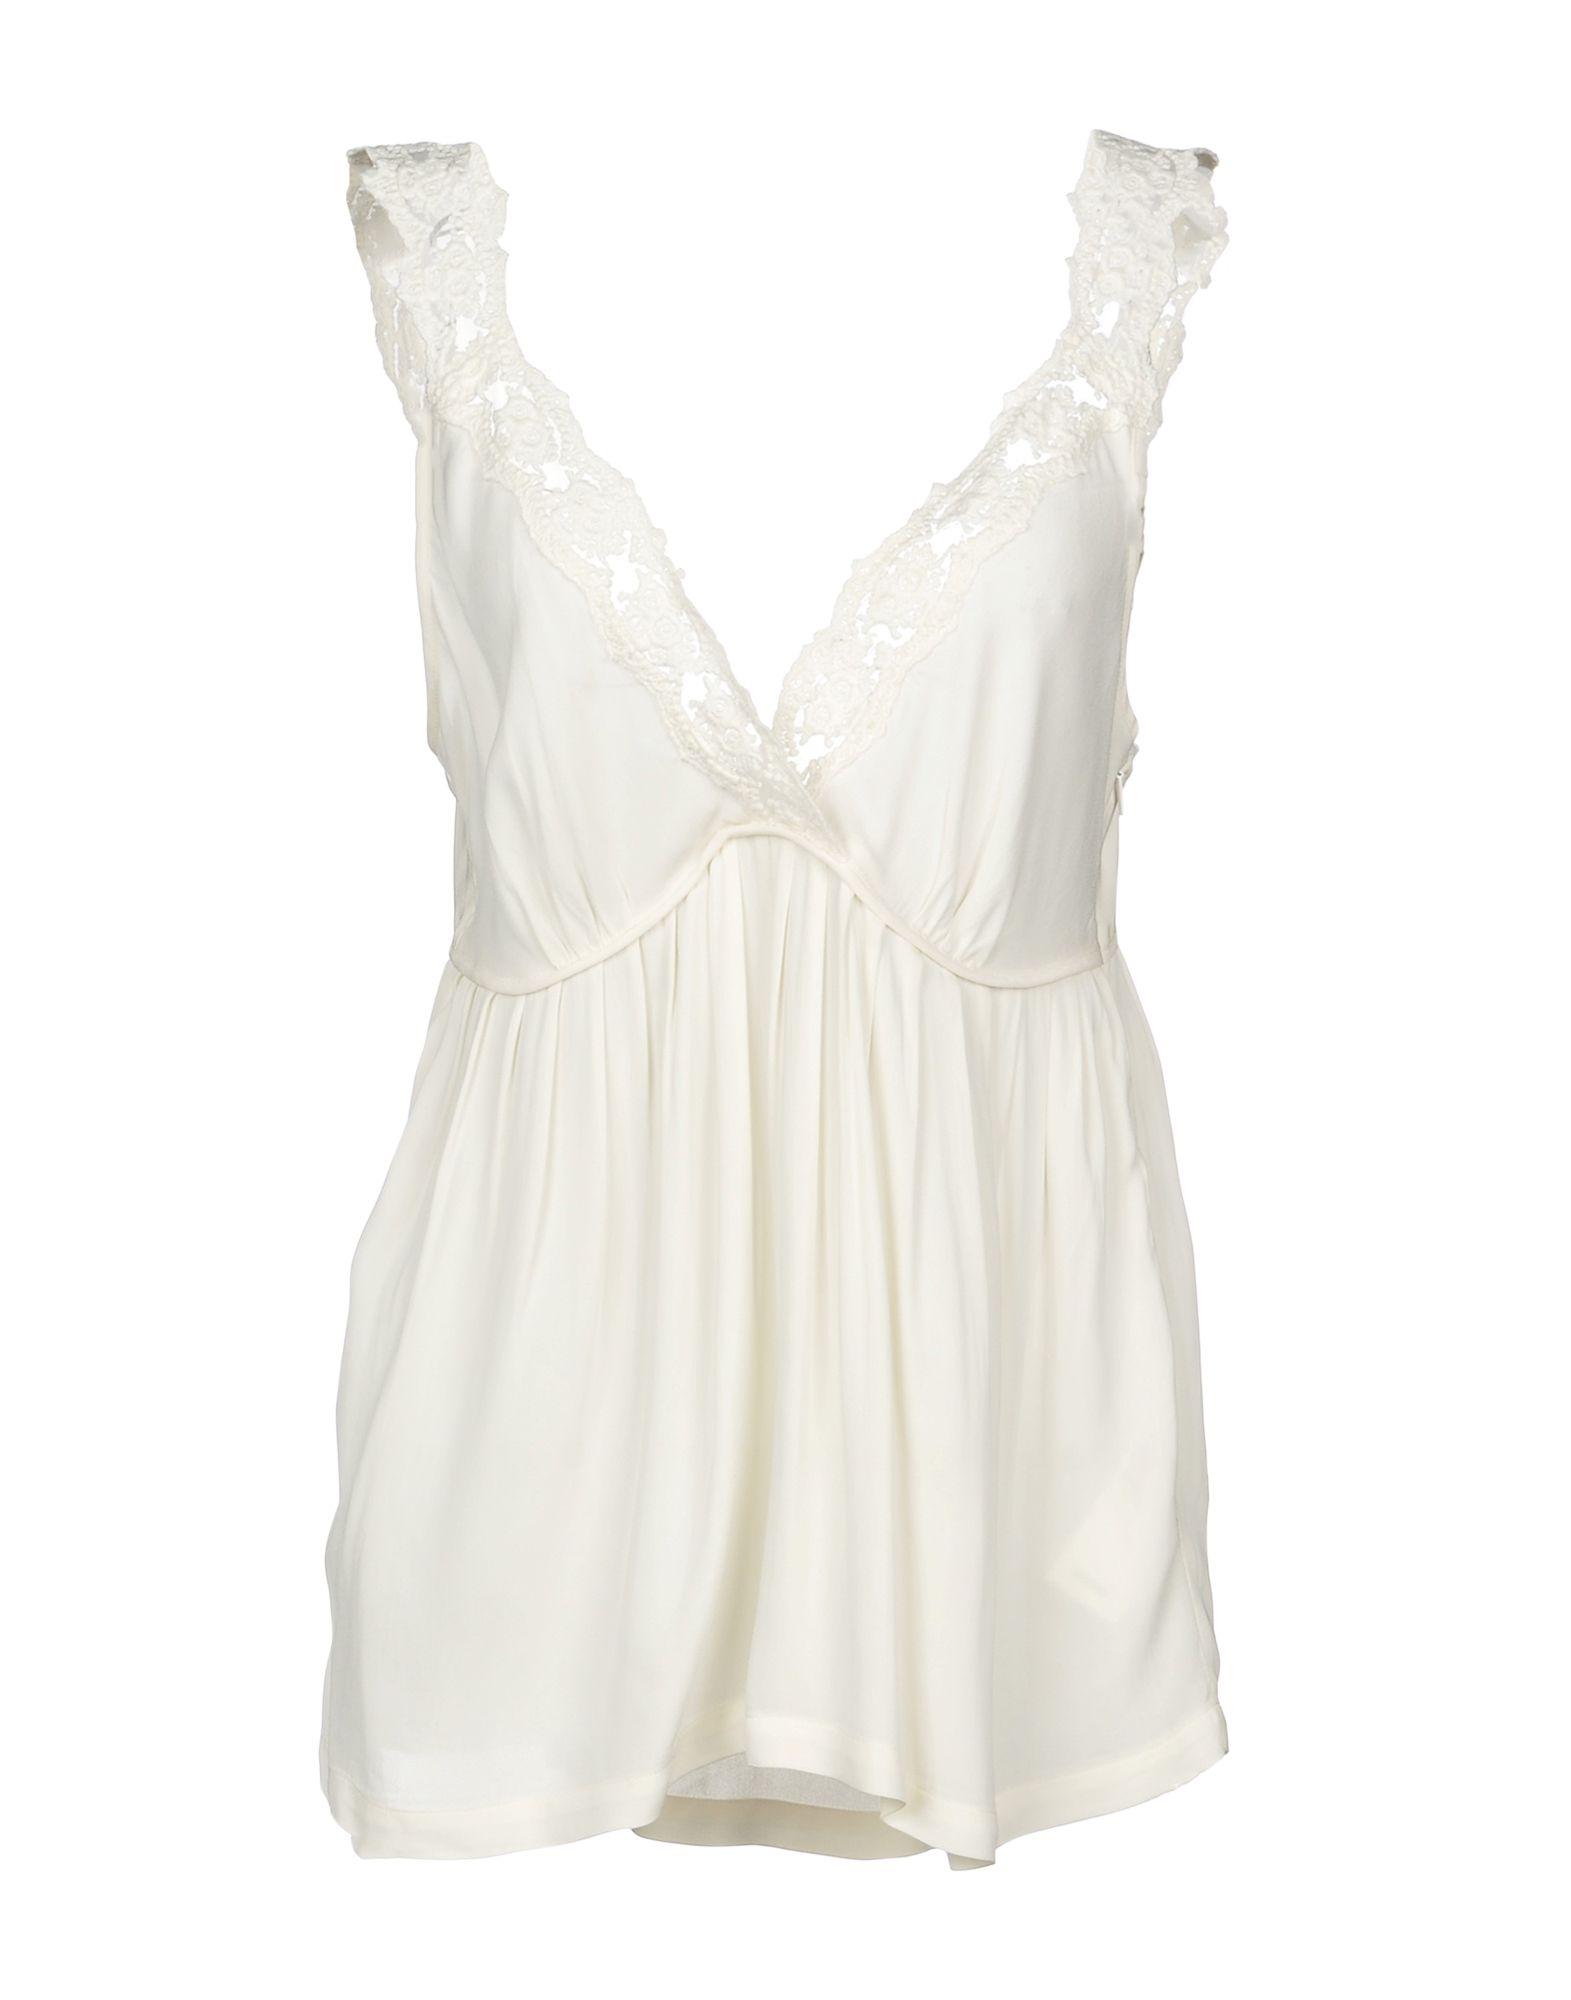 STELLA FOREST Top in Ivory